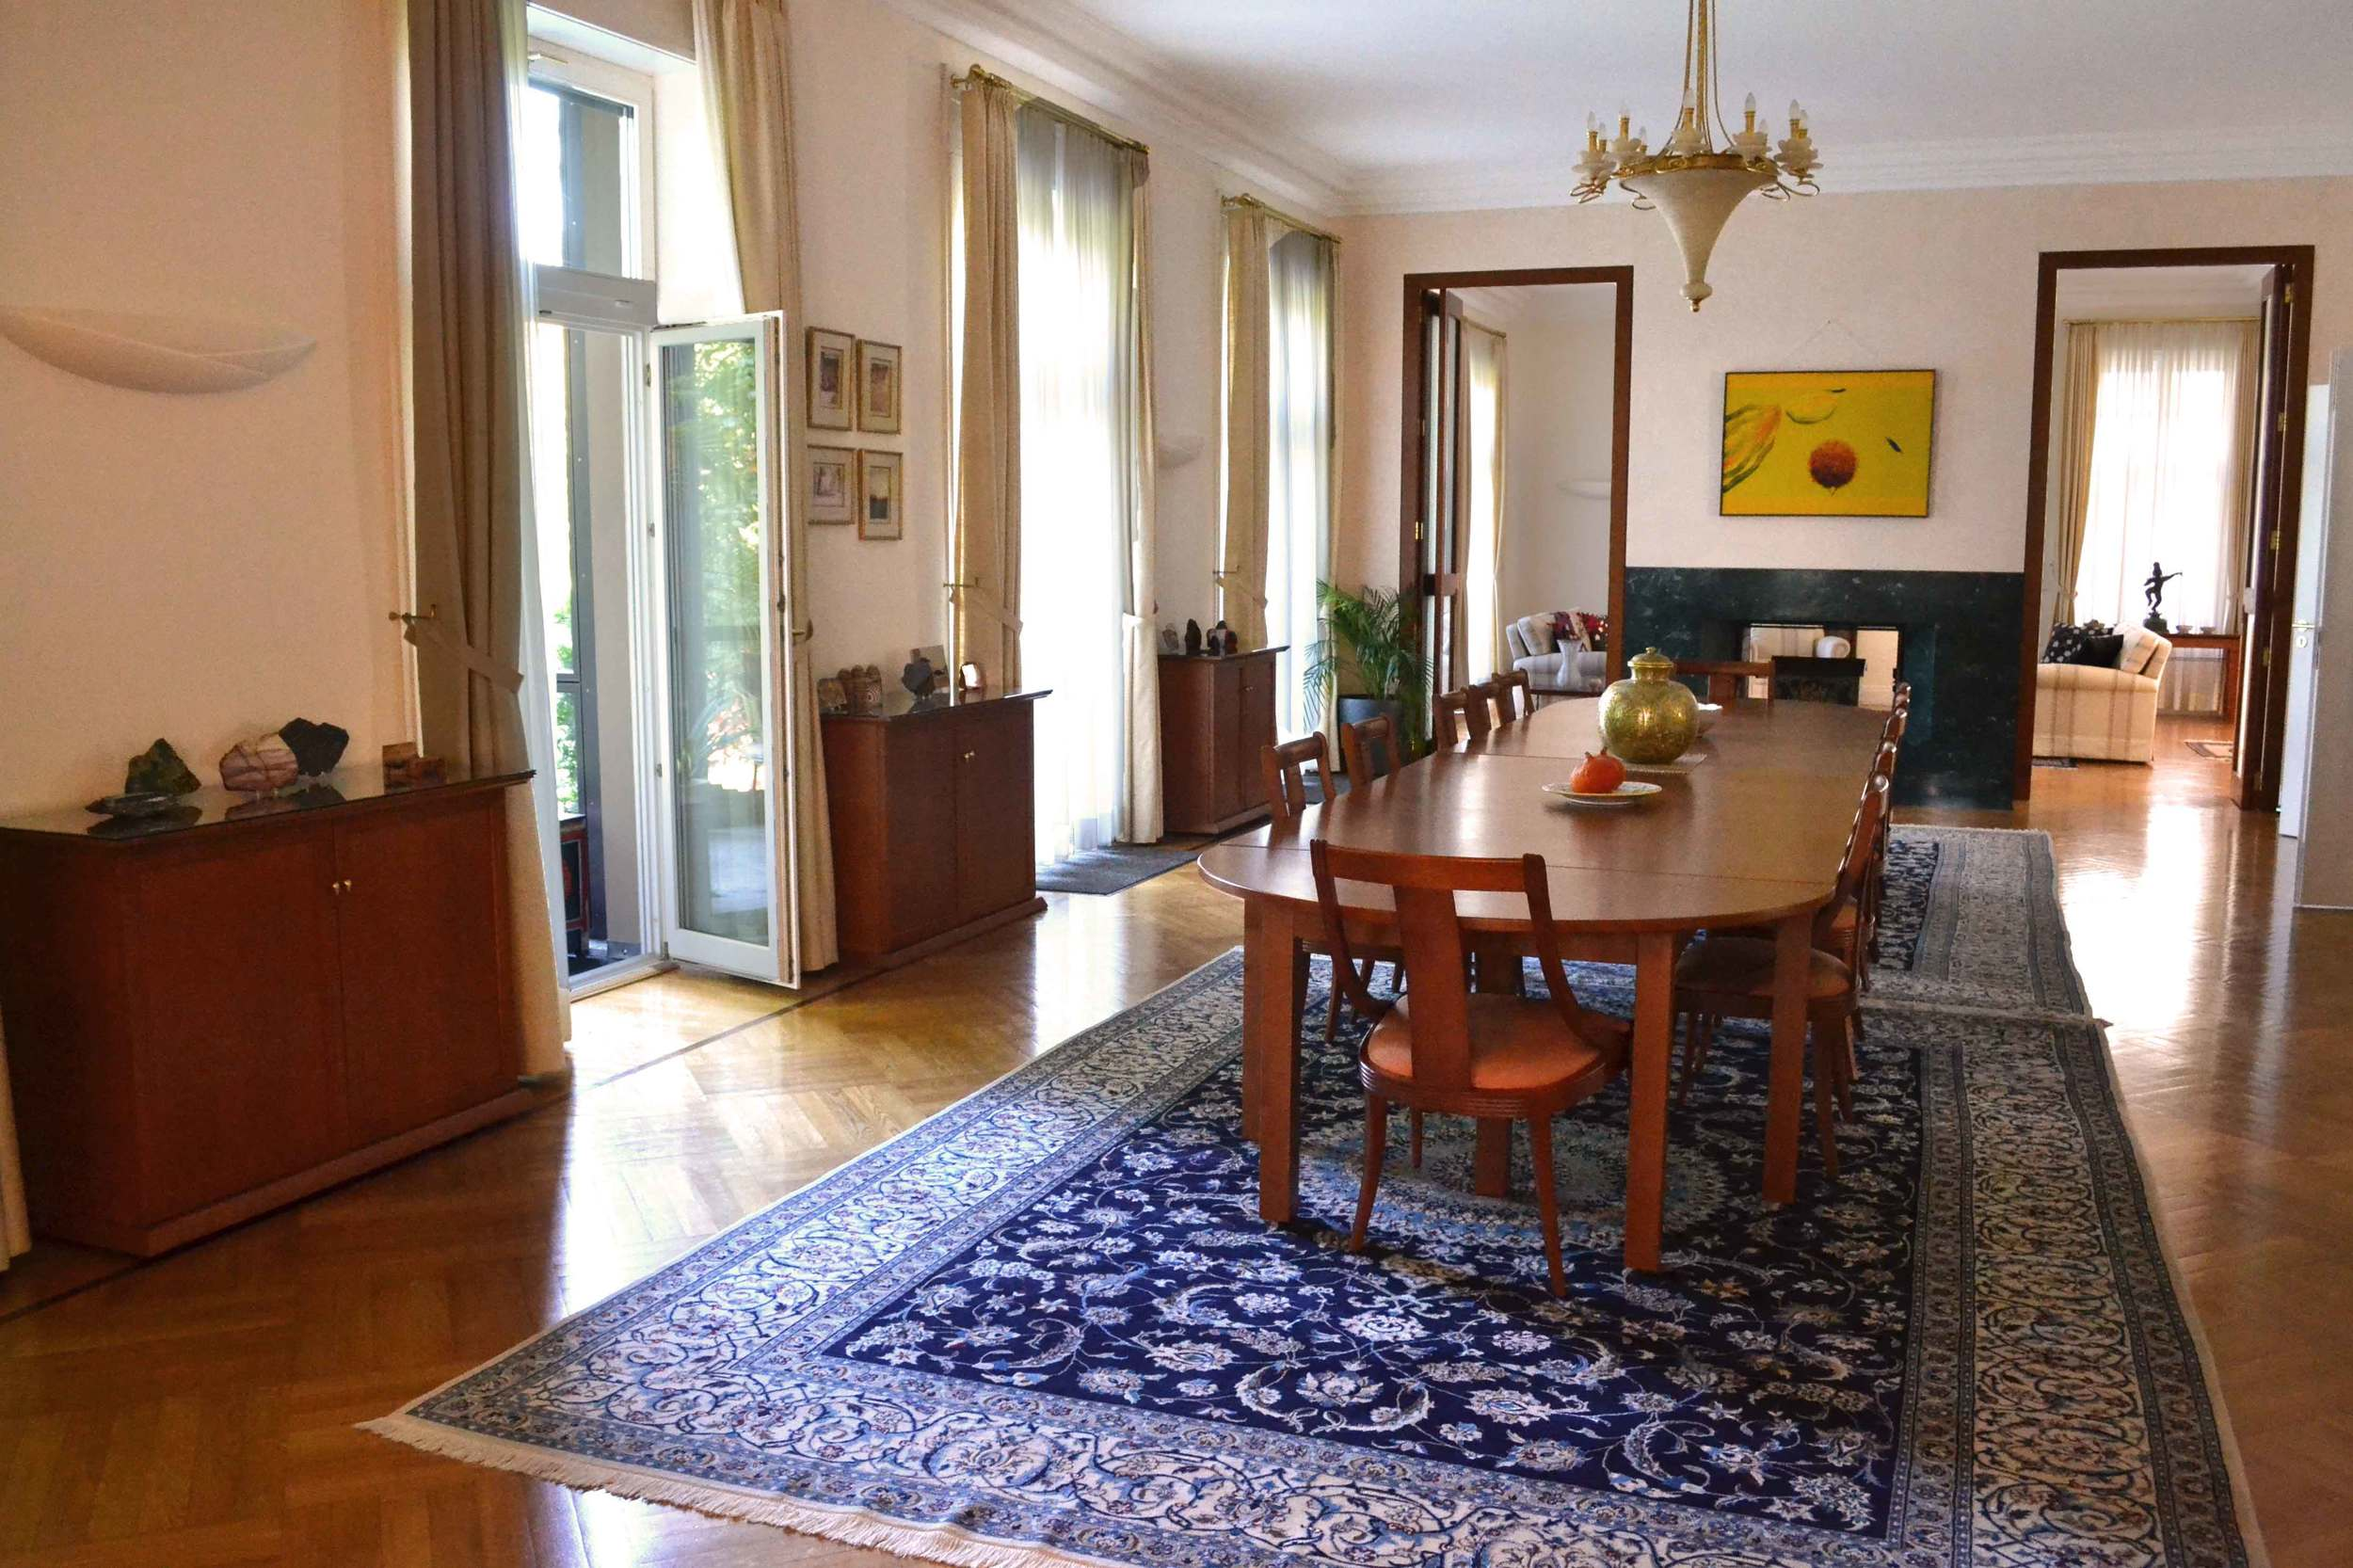 The formal dining room with glass doors opens on the lawn. Image©gunjanvirk